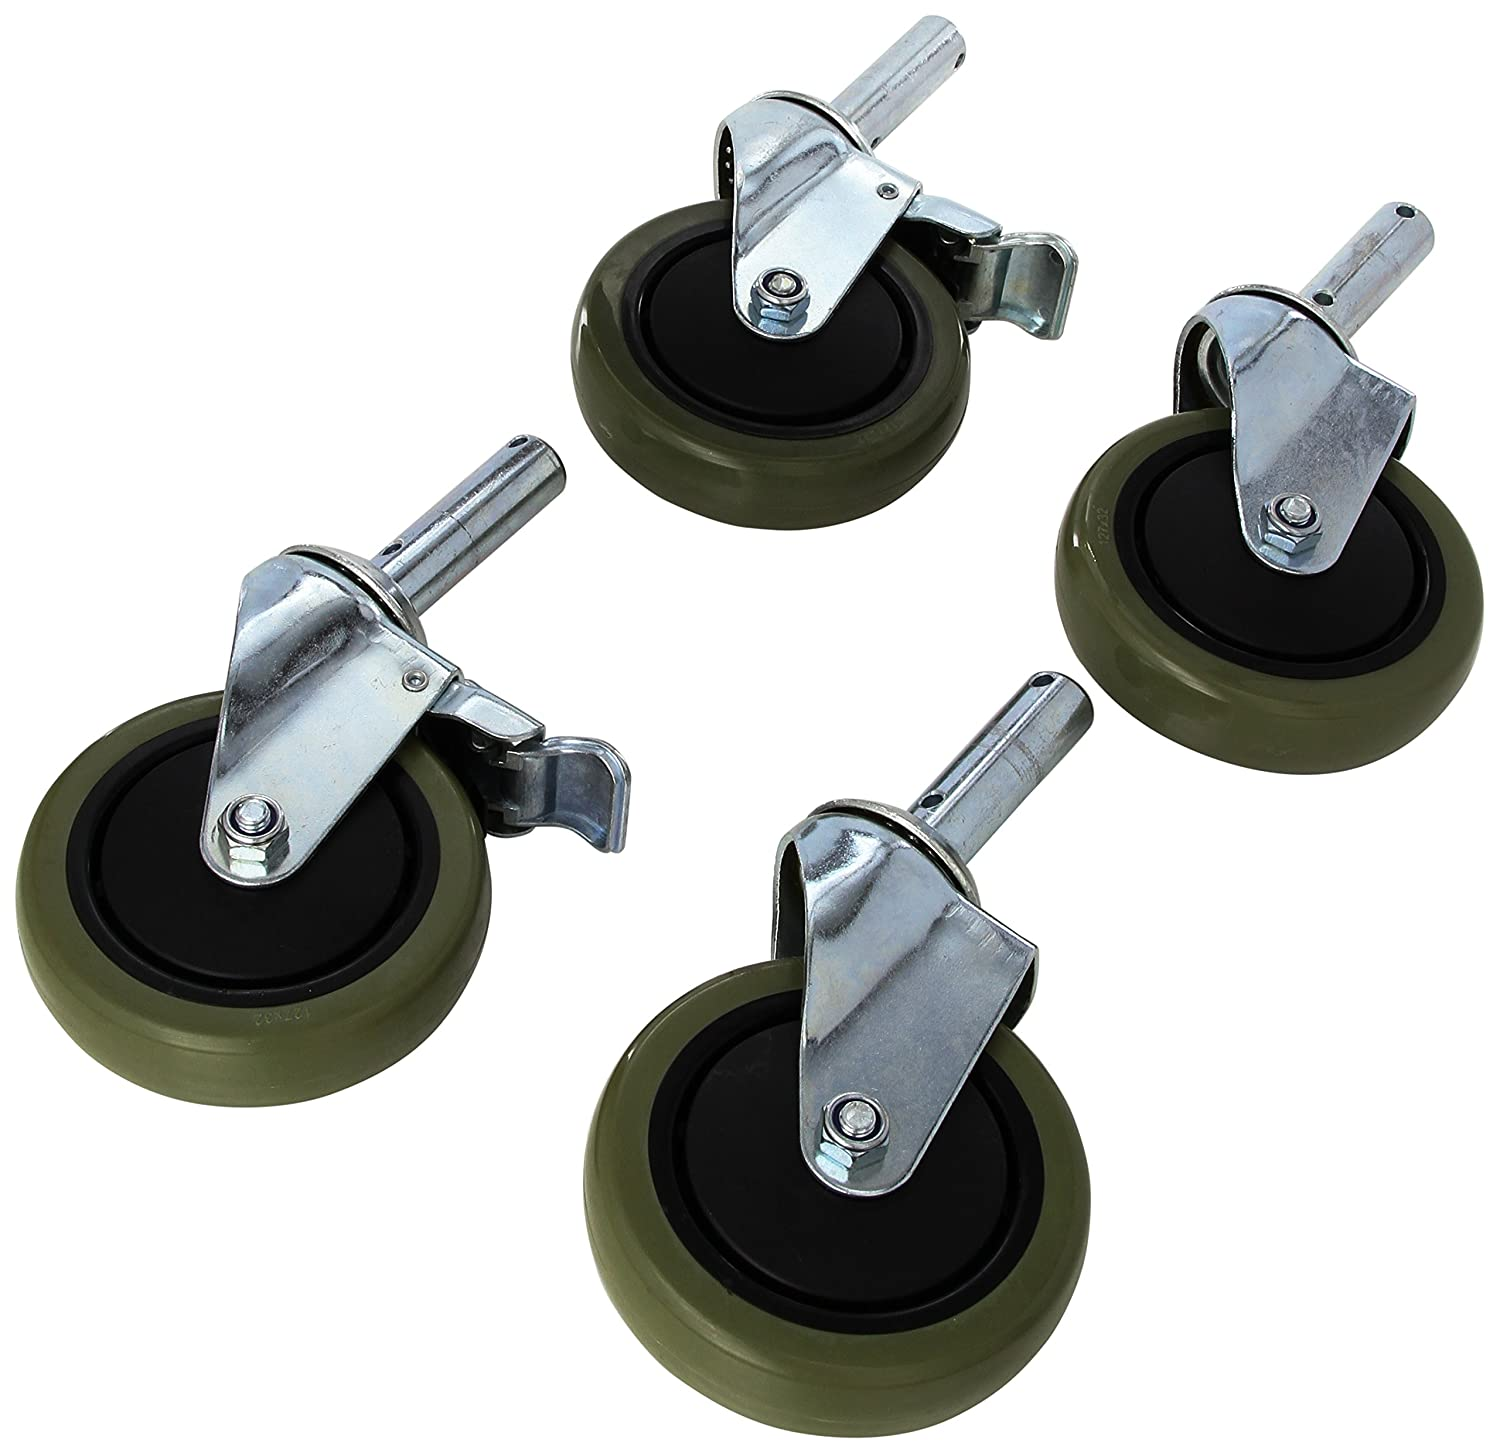 Lumex 7910A-CST Replacement Casters for 7910A-1 and 7915A-1 Shower Chairs (Pack of 2) by Lumex B001O4SCAQ